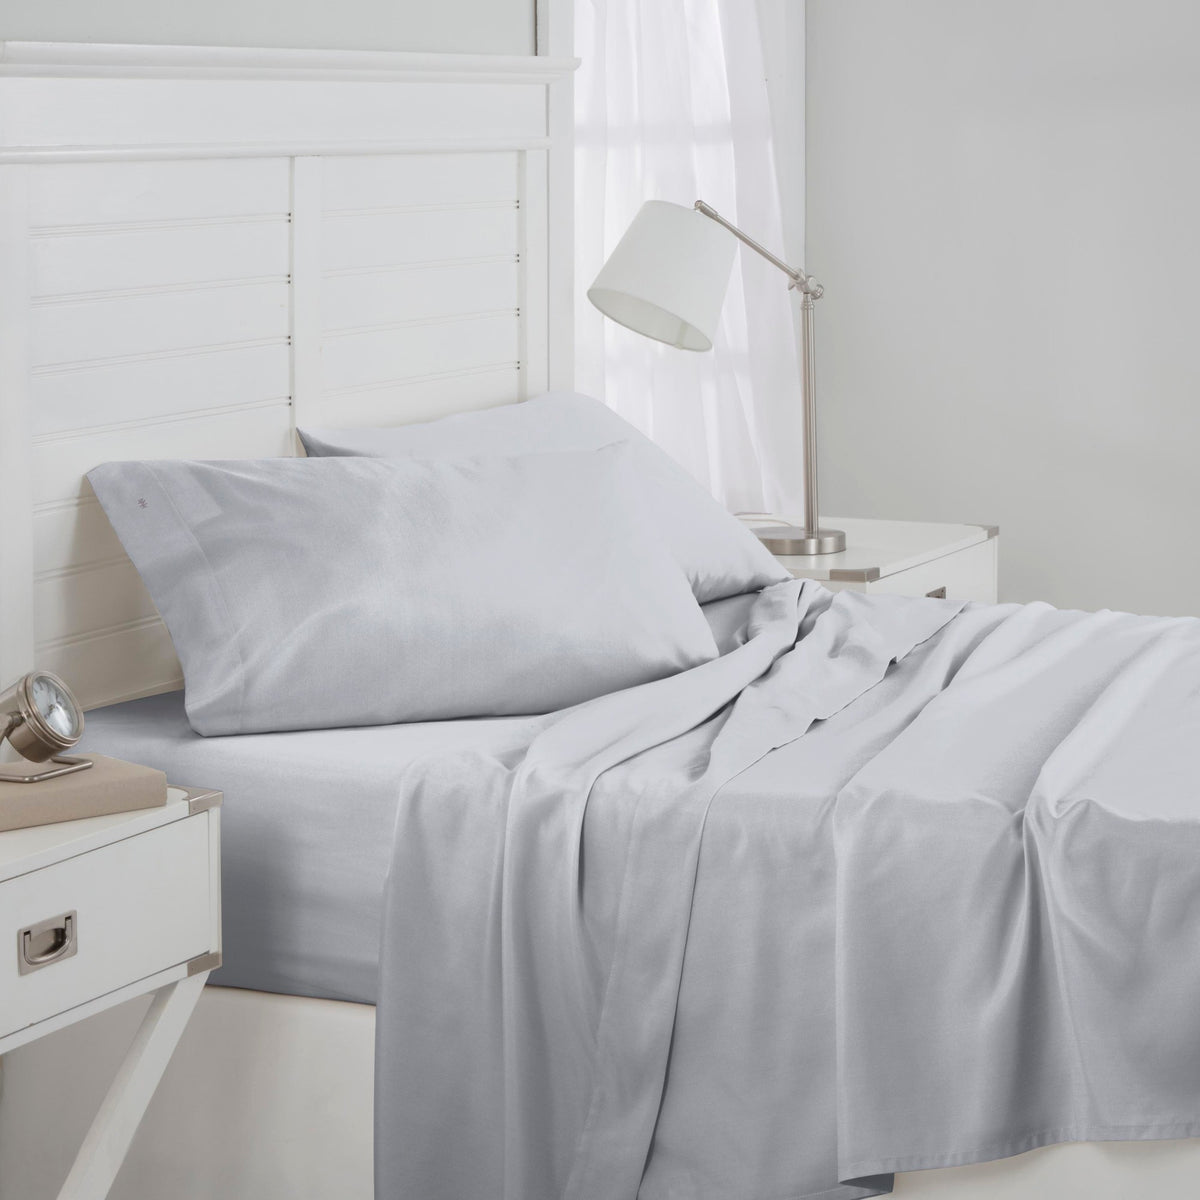 IZOD Herringbone Sheet Set Collection